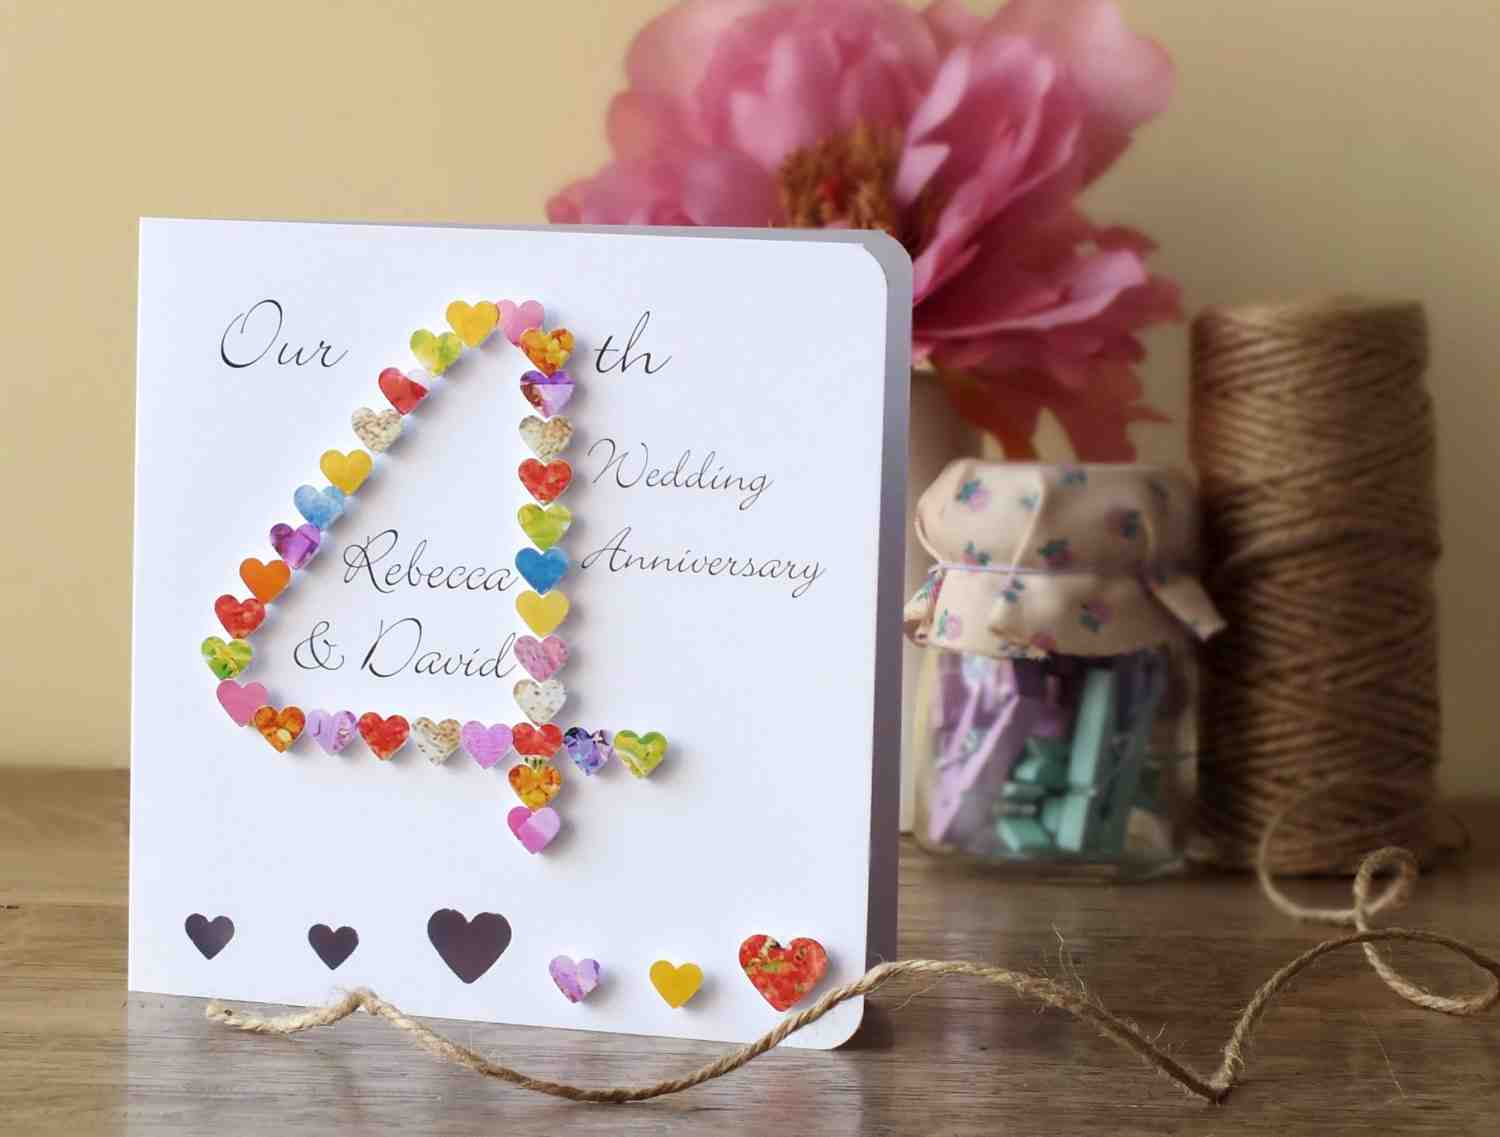 Fourth Year Wedding Anniversary Gift: Wedding And Bridal Inspiration